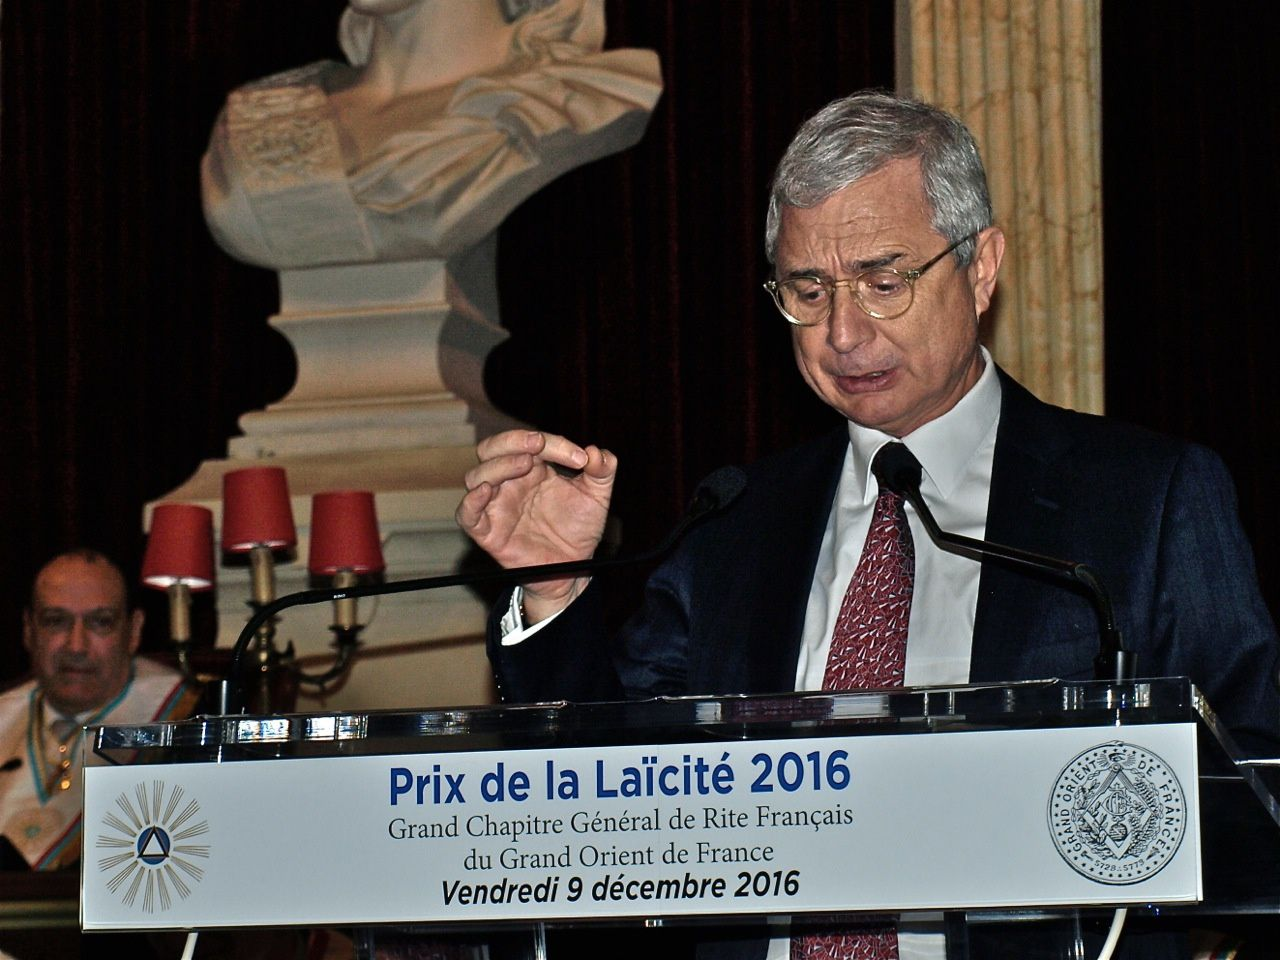 Claude Bartolone, président de l'Assemblée Nationale (Photo : JP Chardon)